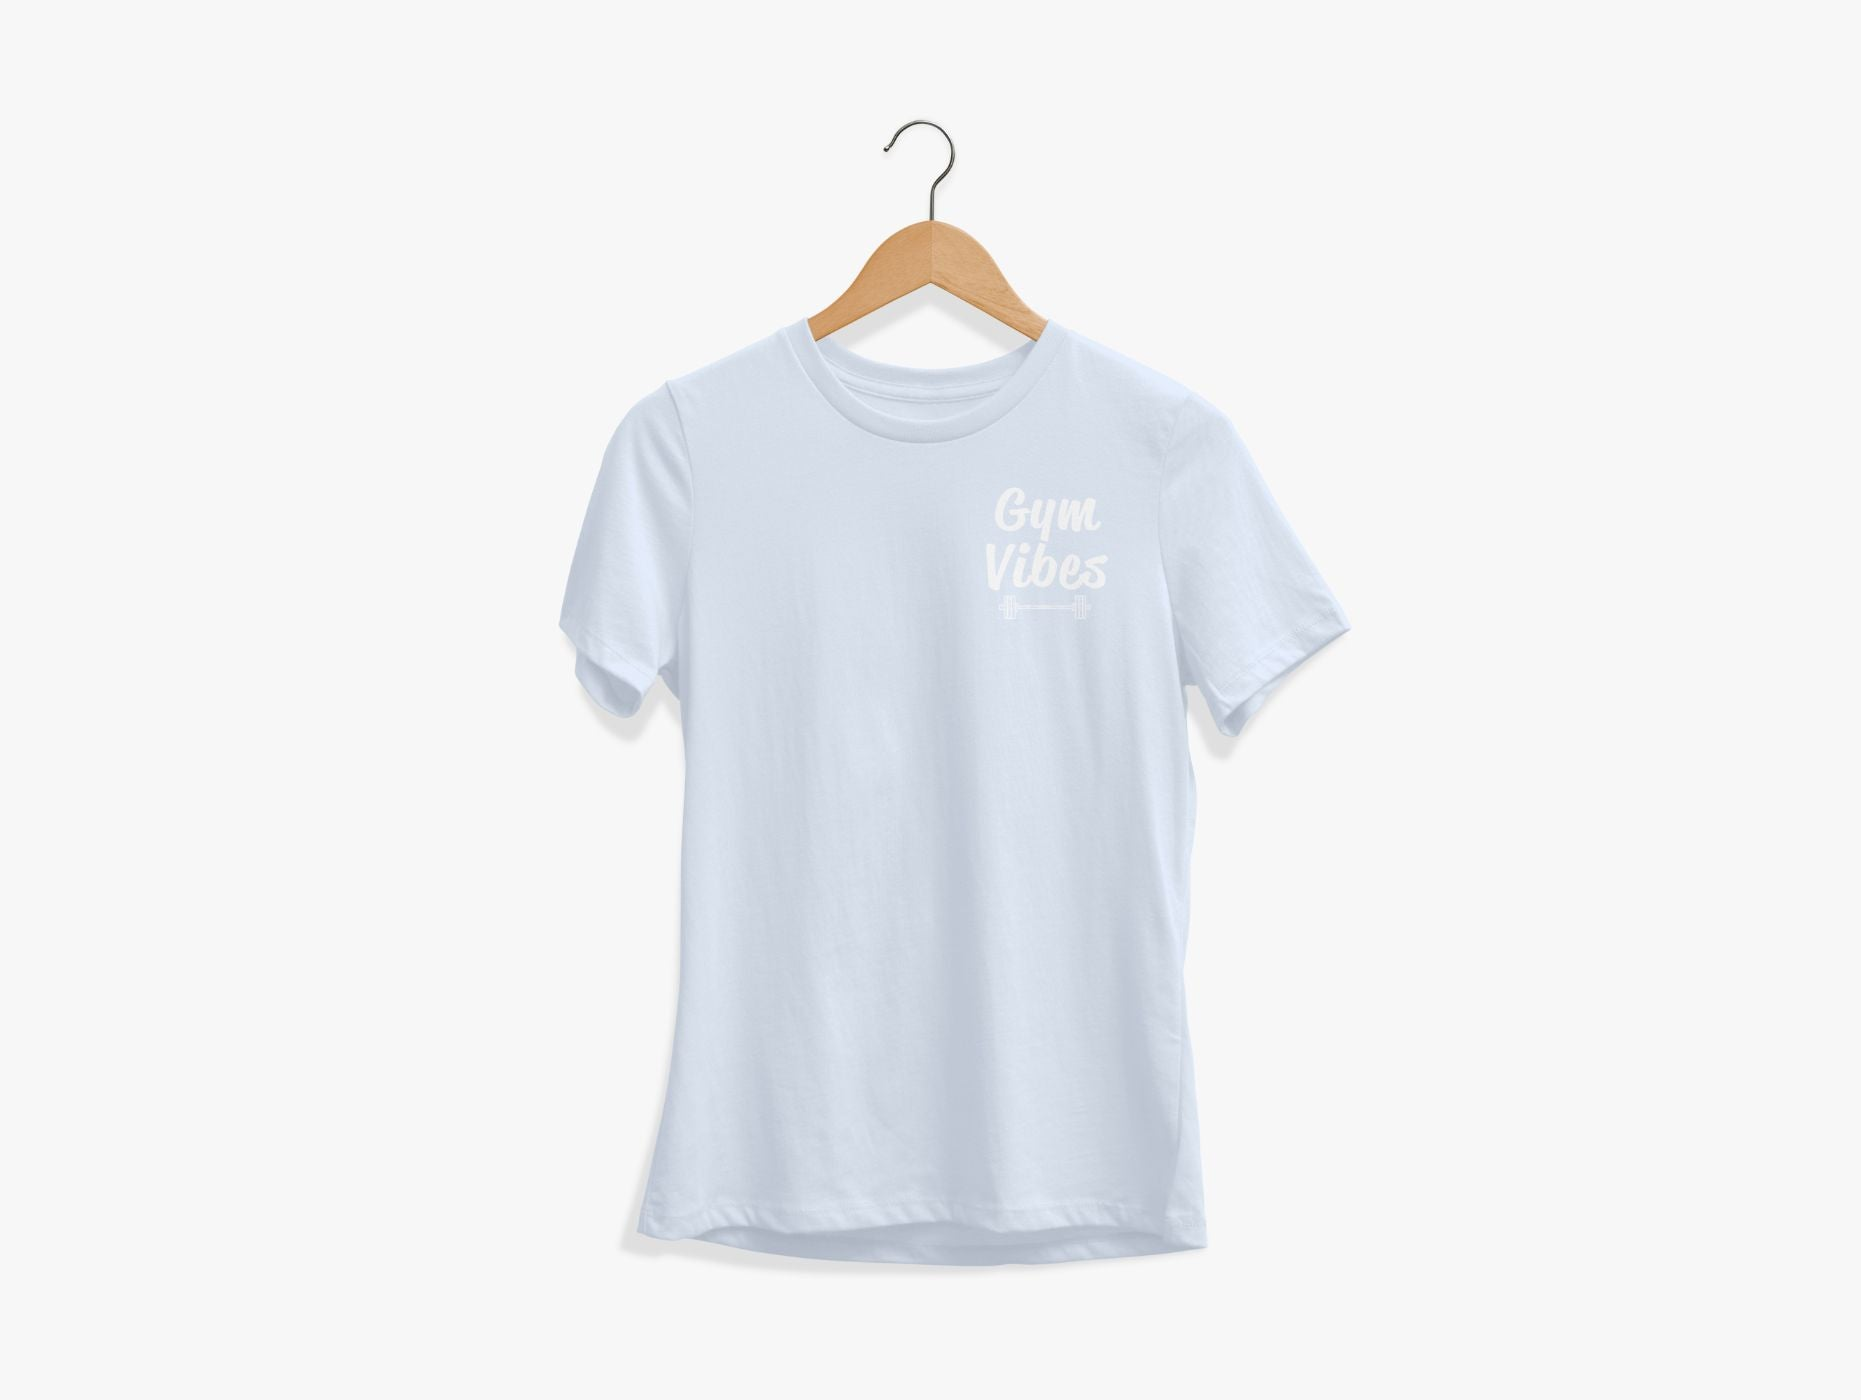 Gym Vibes T-Shirt